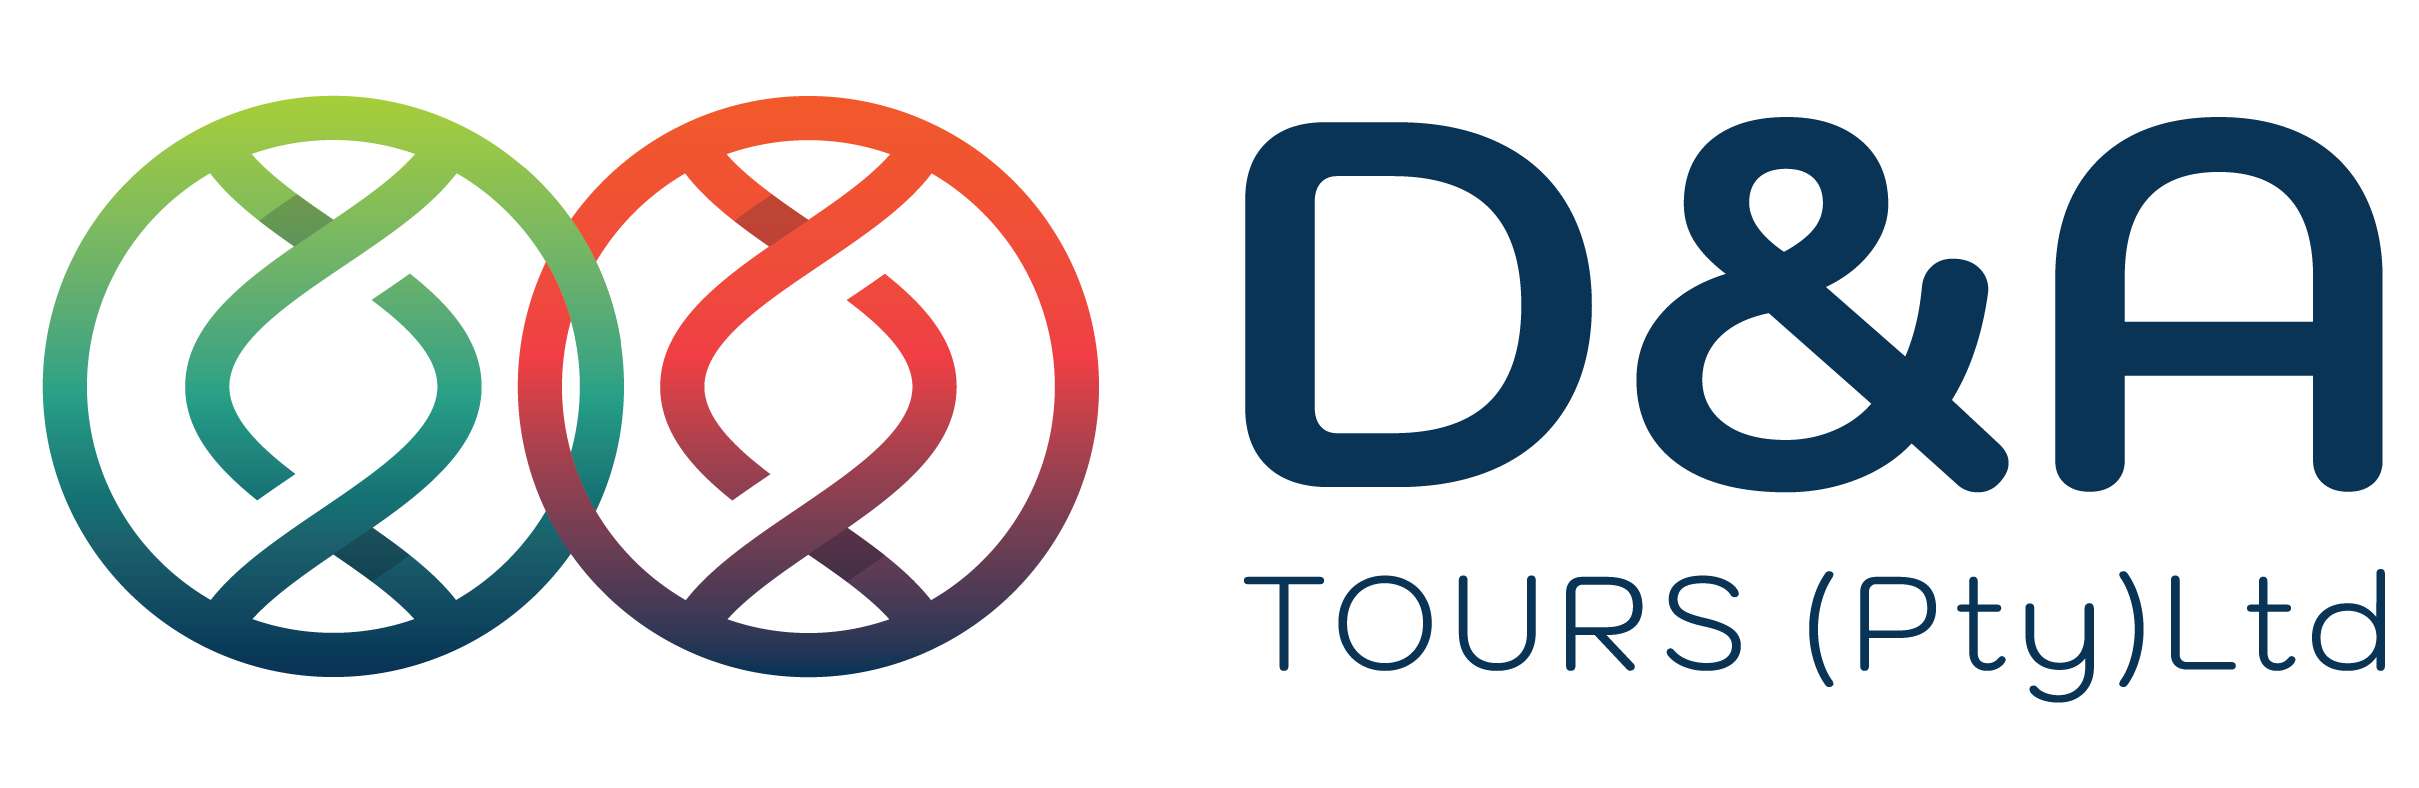 DNA Home - DNA Tours